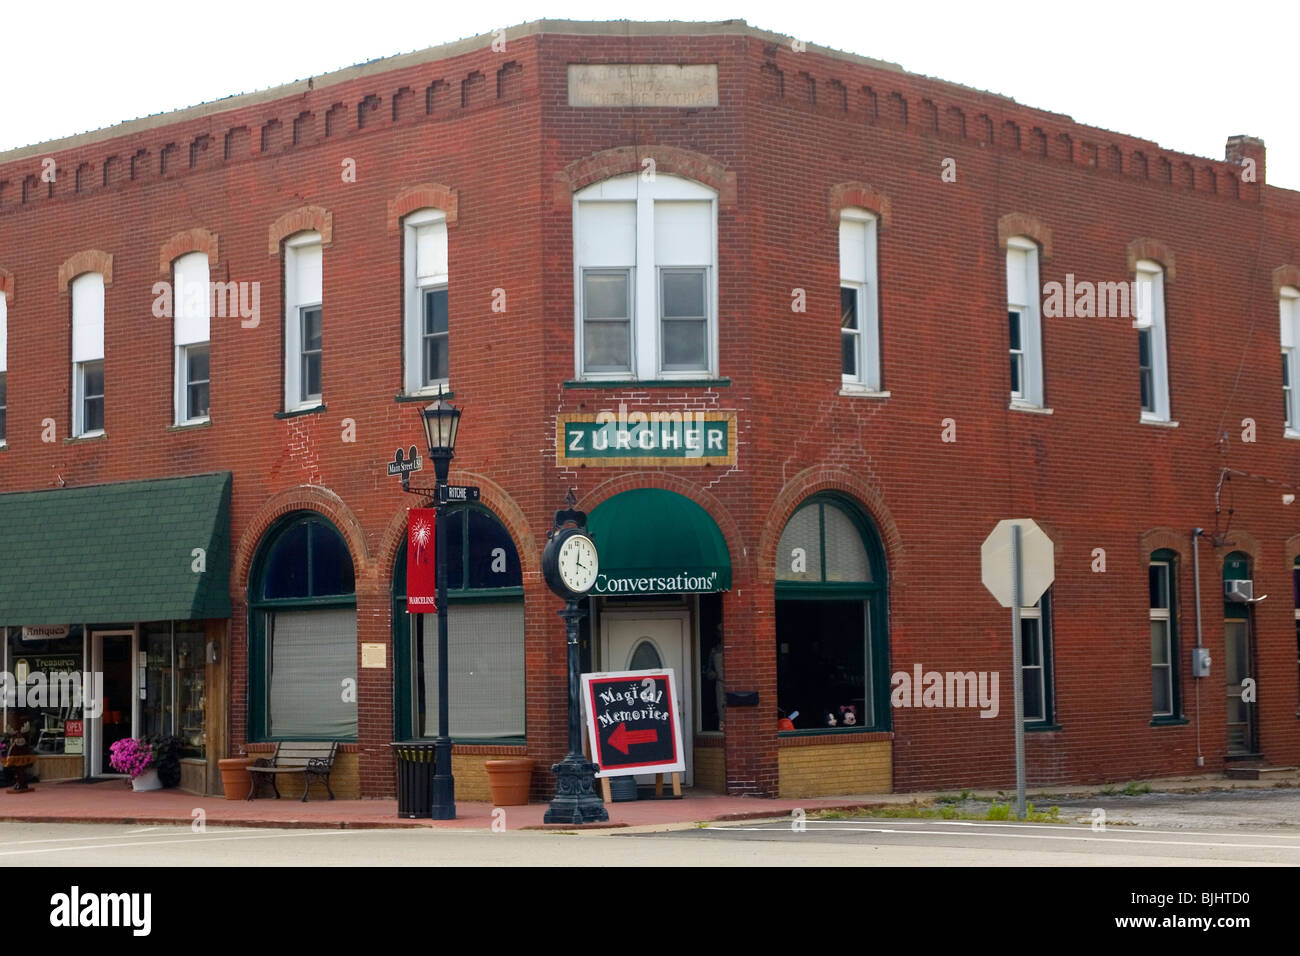 Zurcher Building Photo Stock